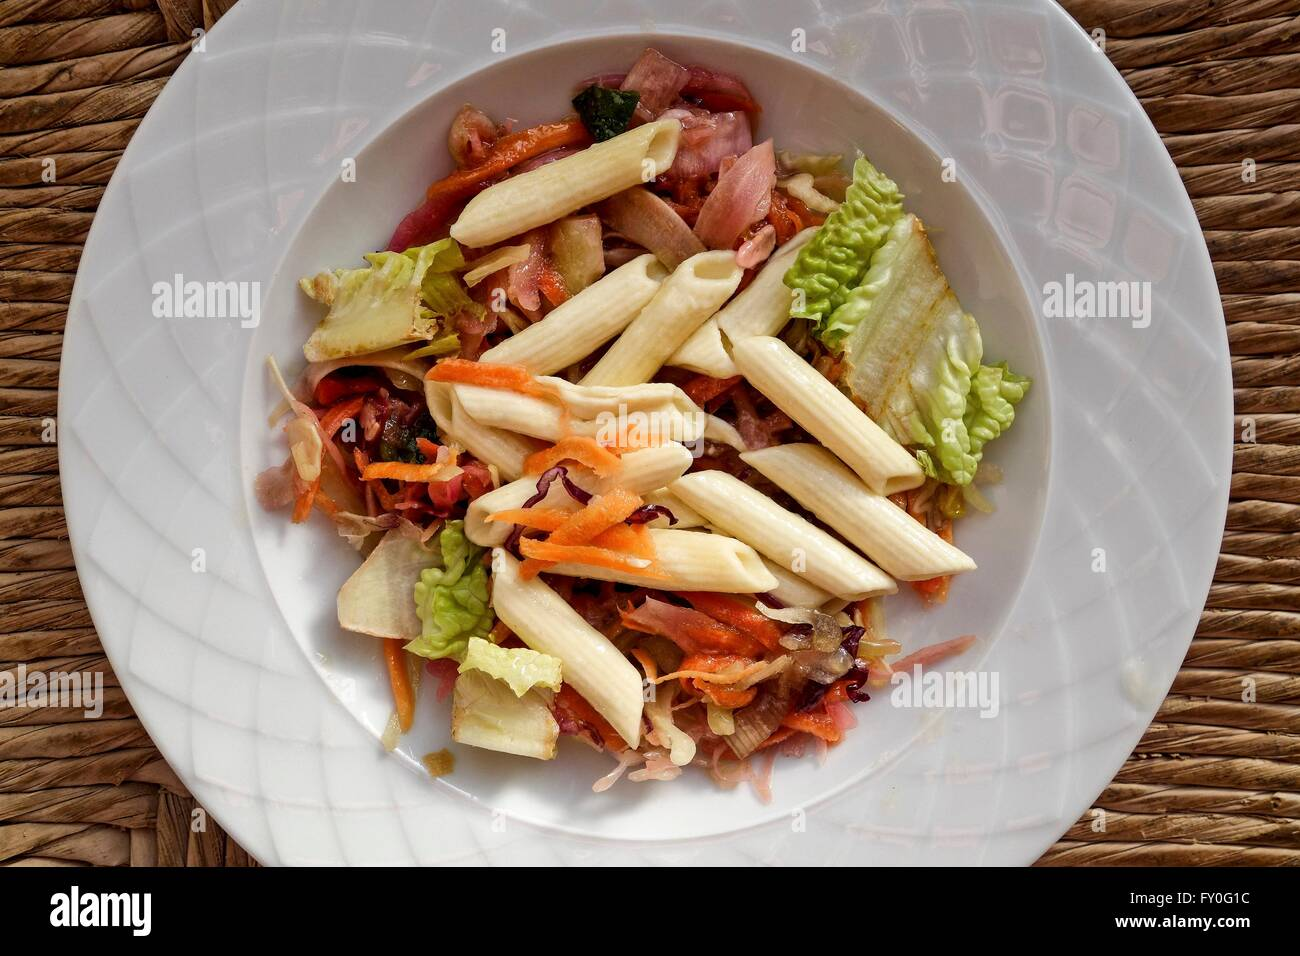 Chopped Mixed Vegetables and Penne Rigate Pasta Salad. - Stock Image